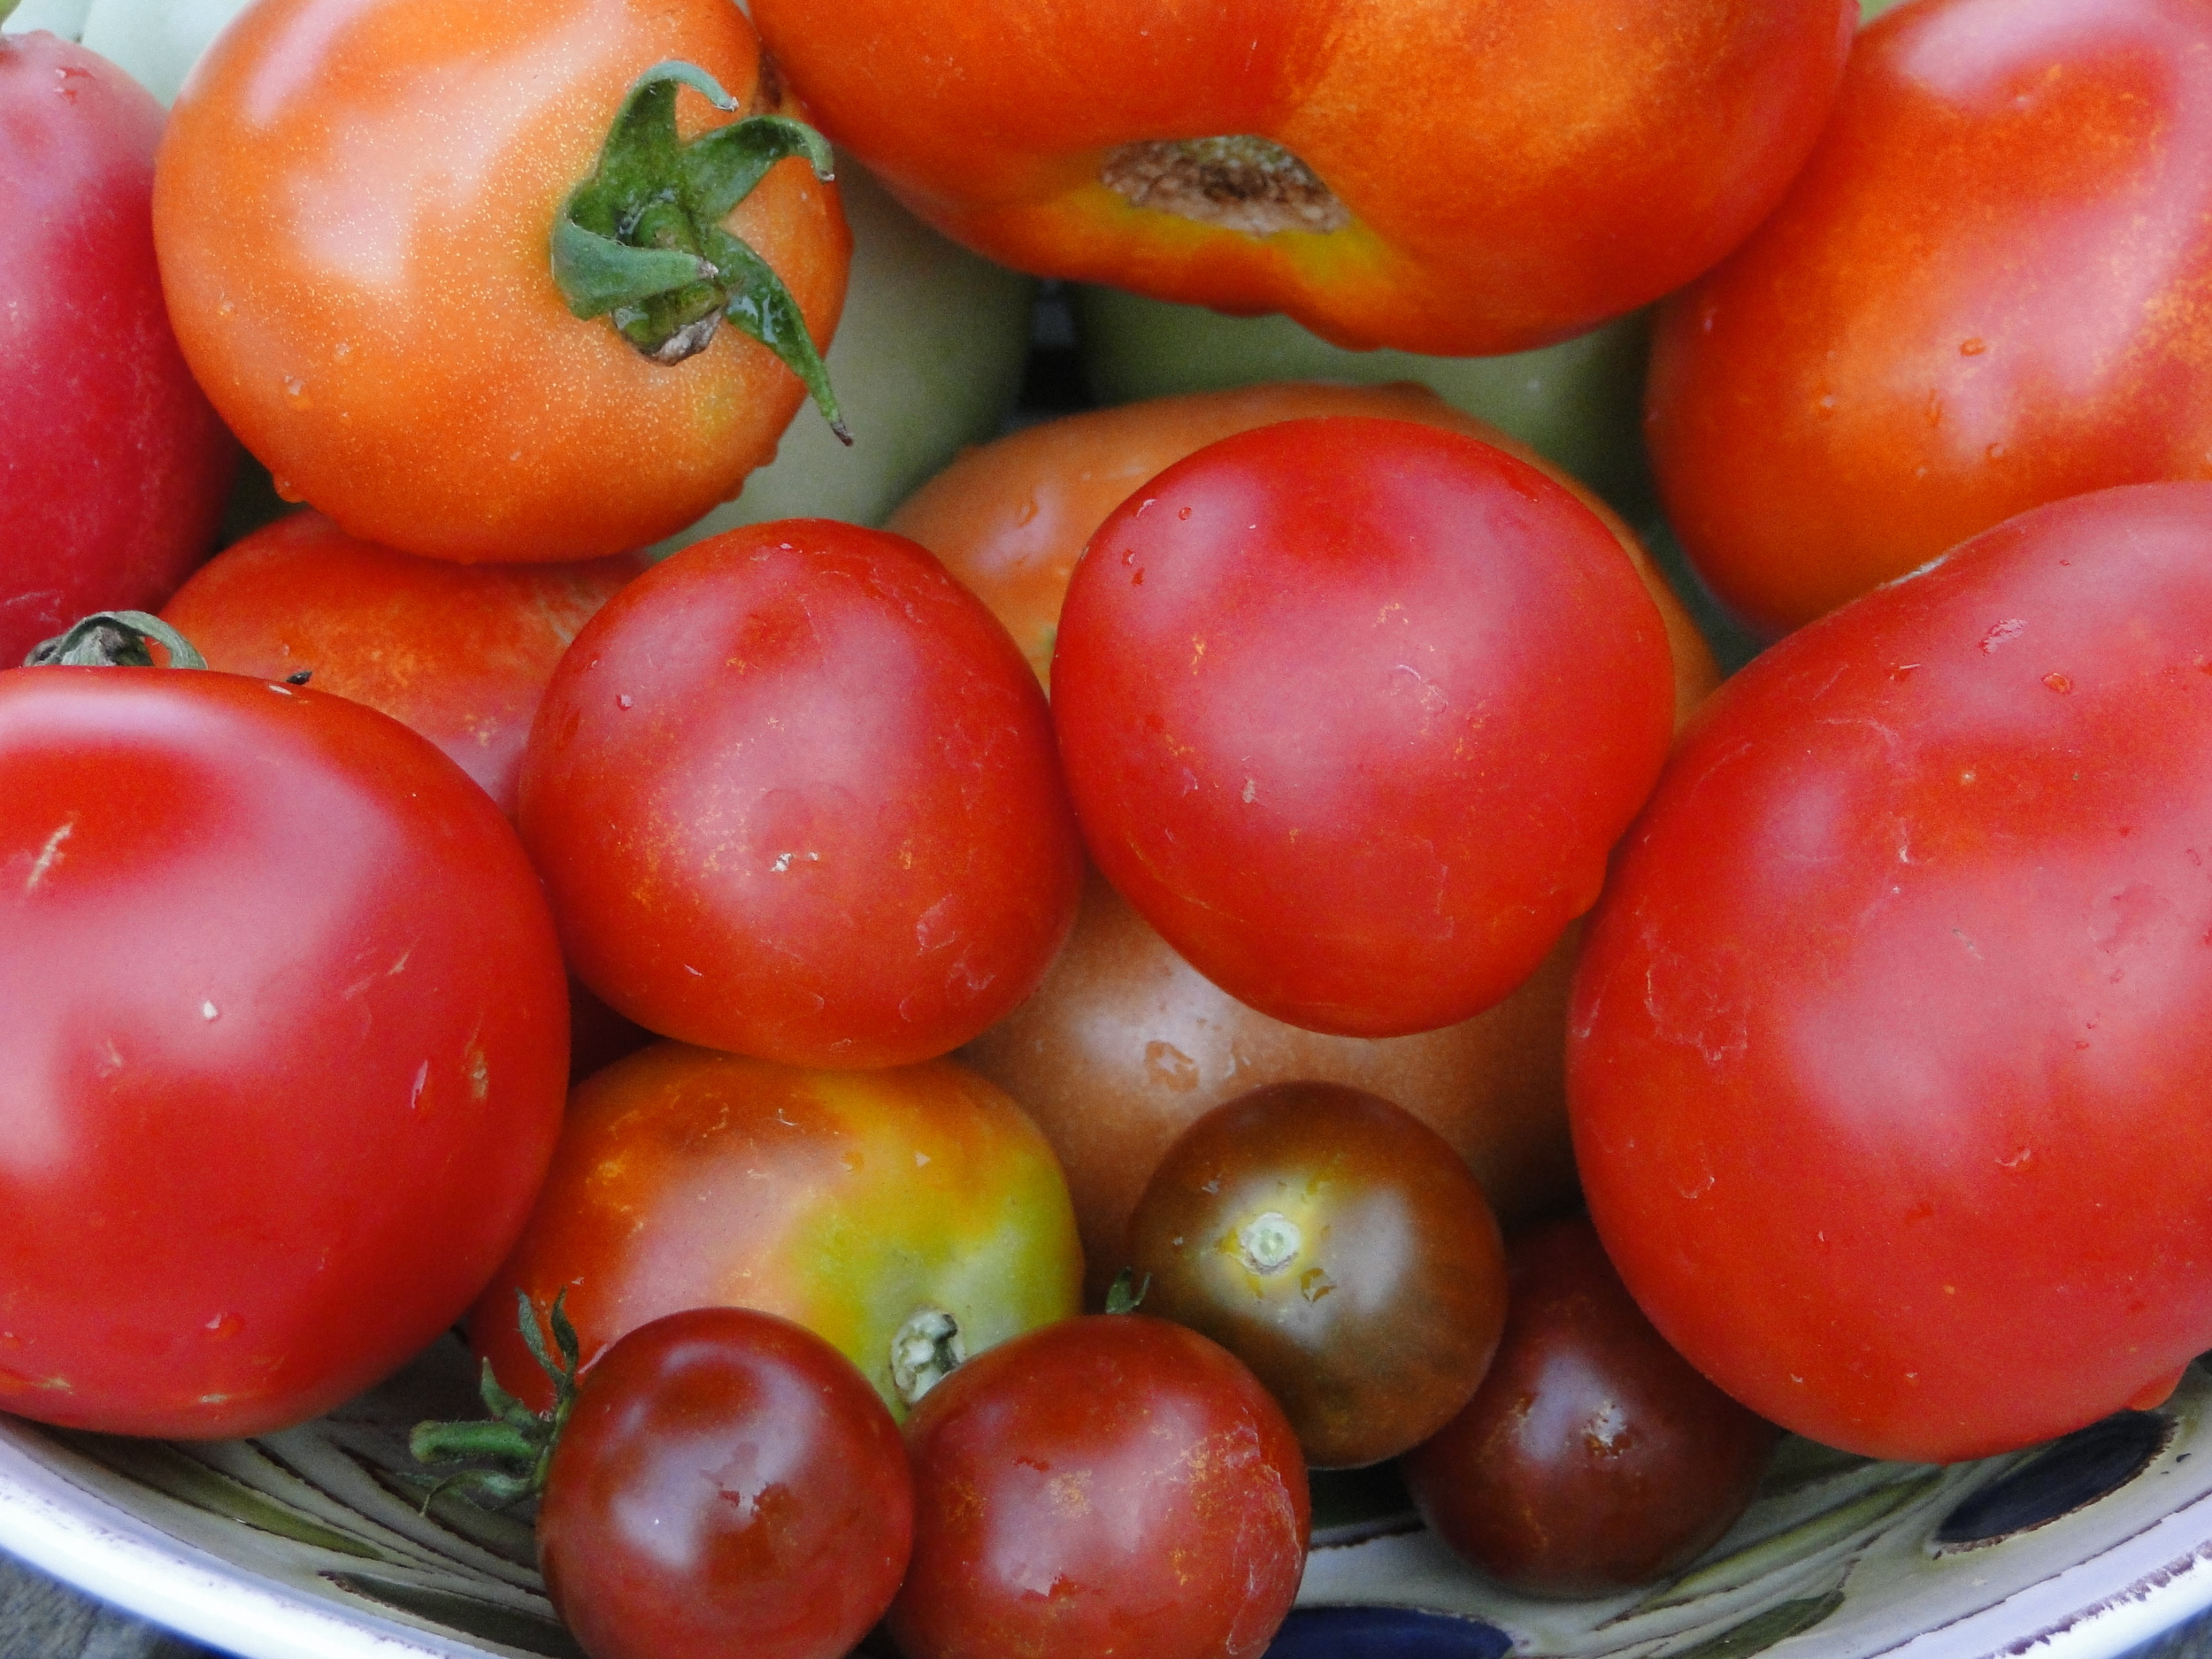 Several varieties of fresh tomatoes from our garden. The small dark tomato is a black cherry. They are so sweet!